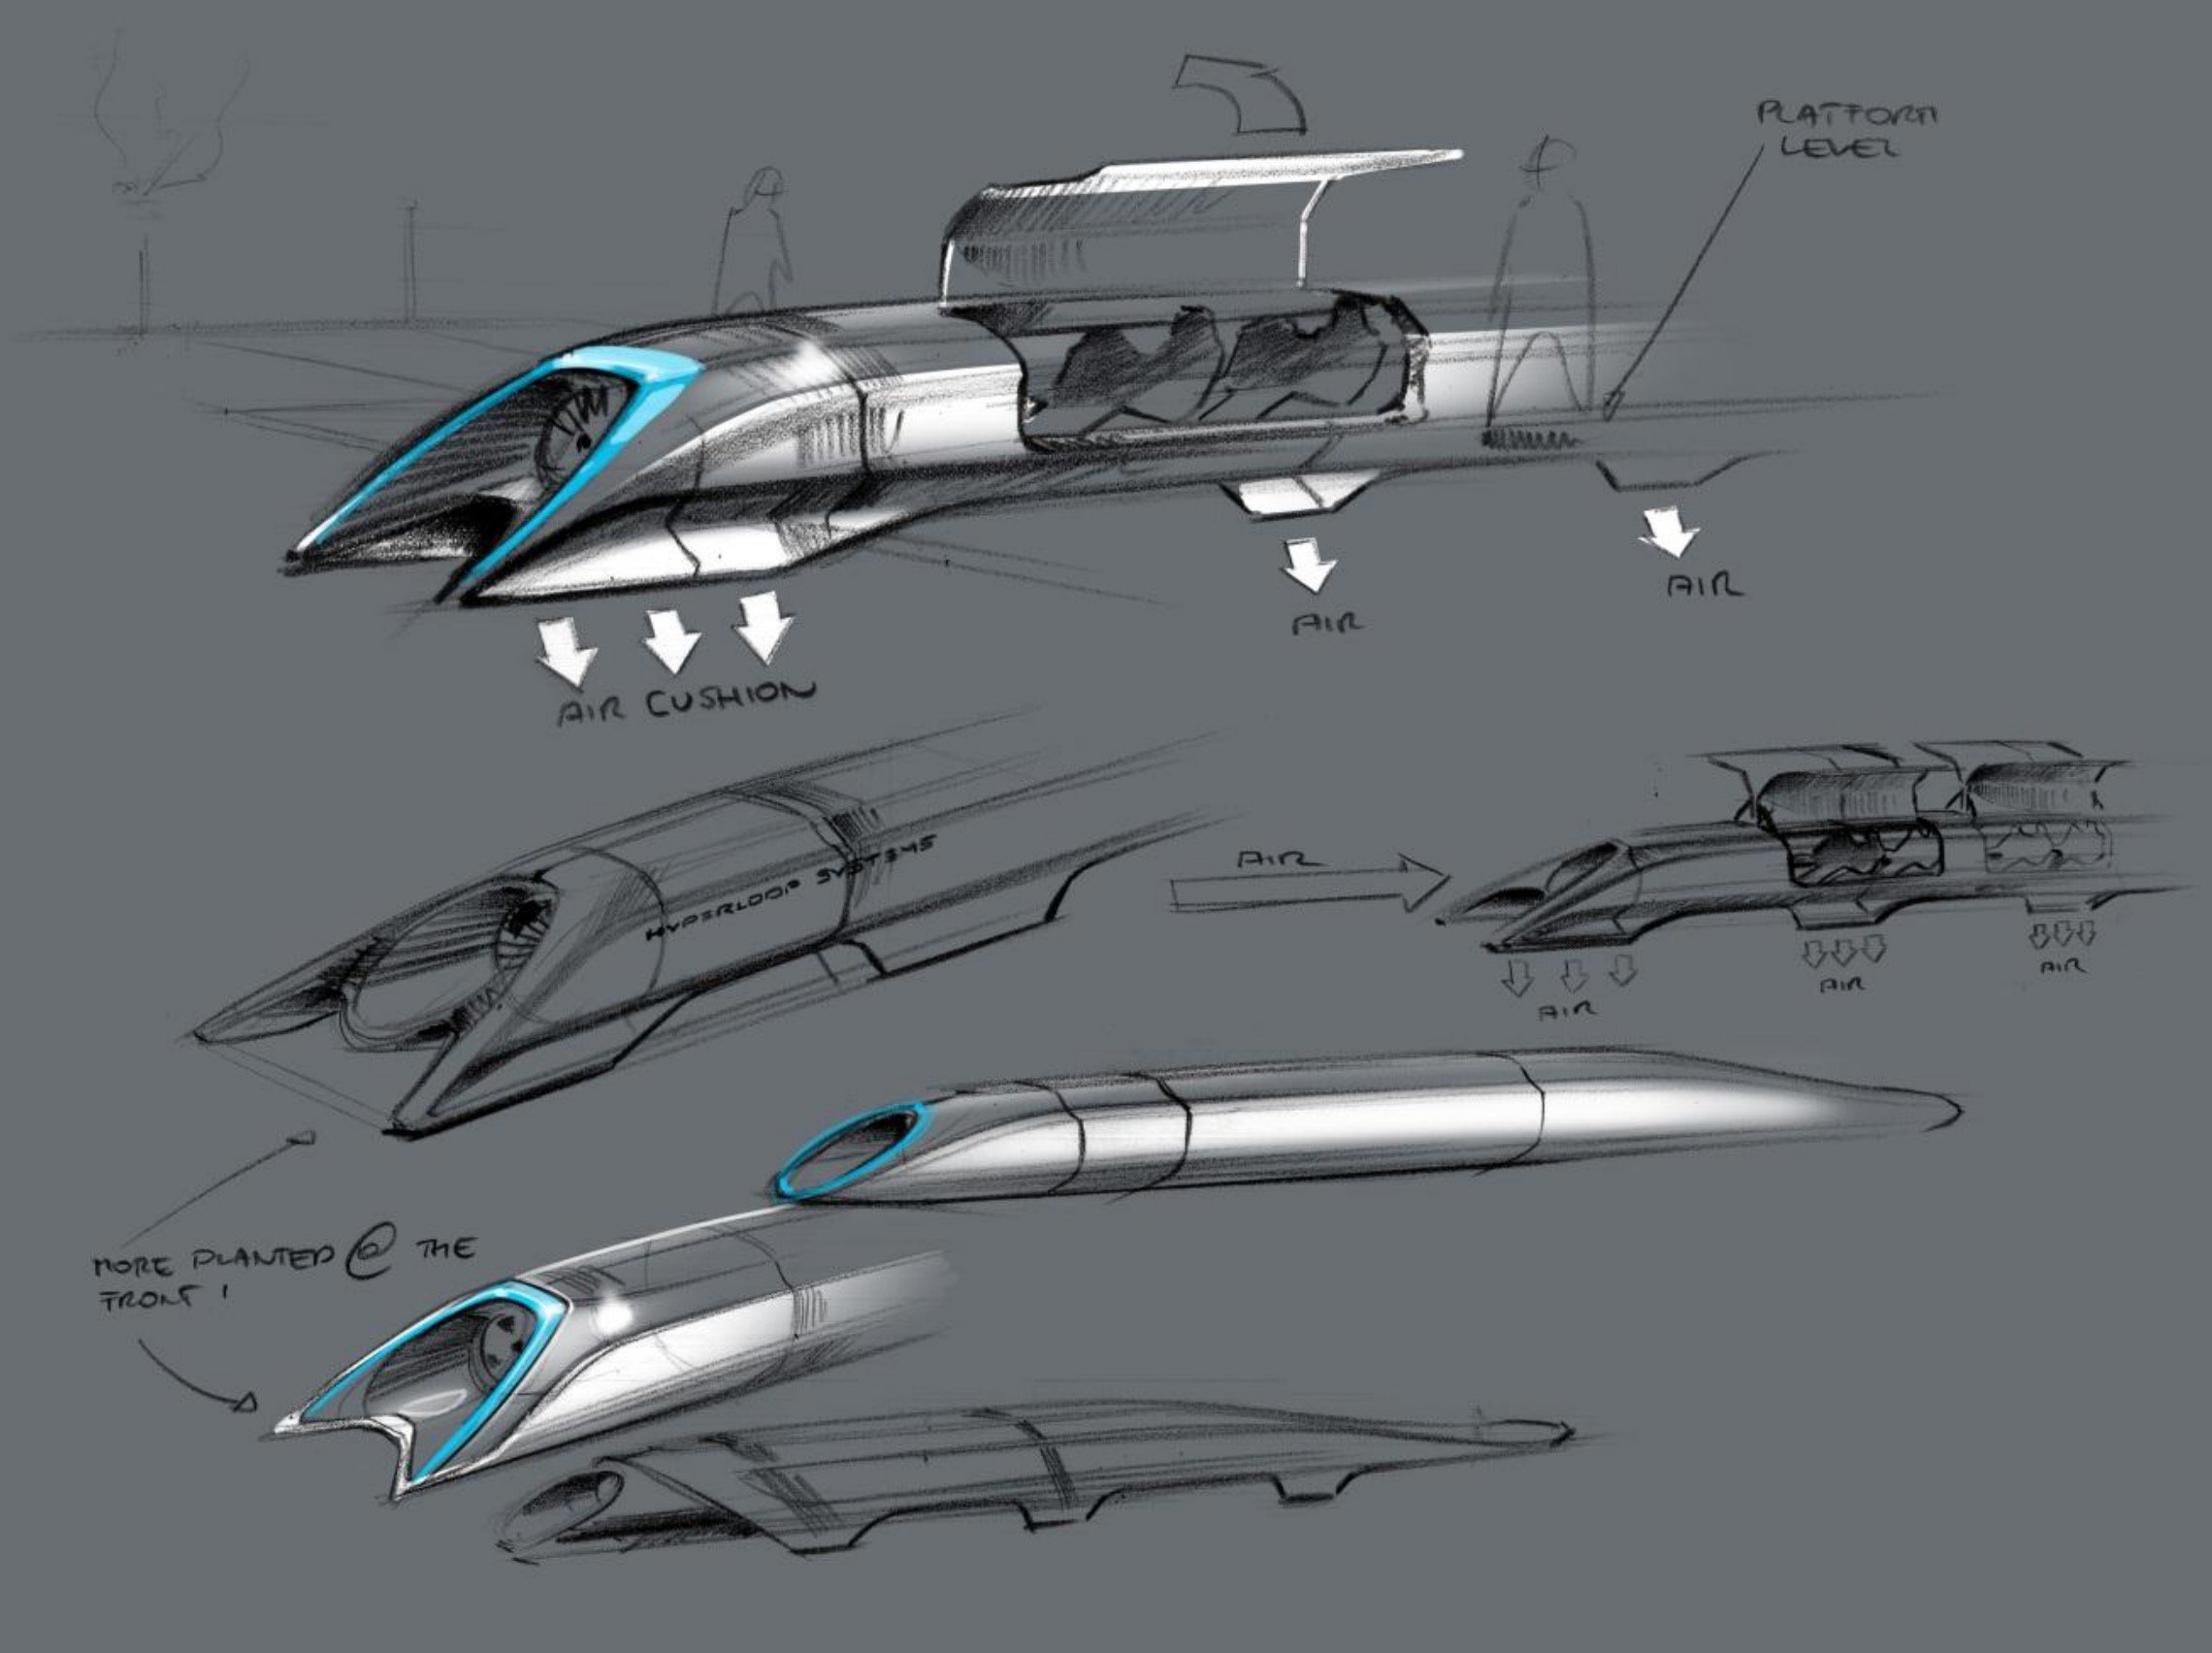 Musk's original Hyperloop sketch